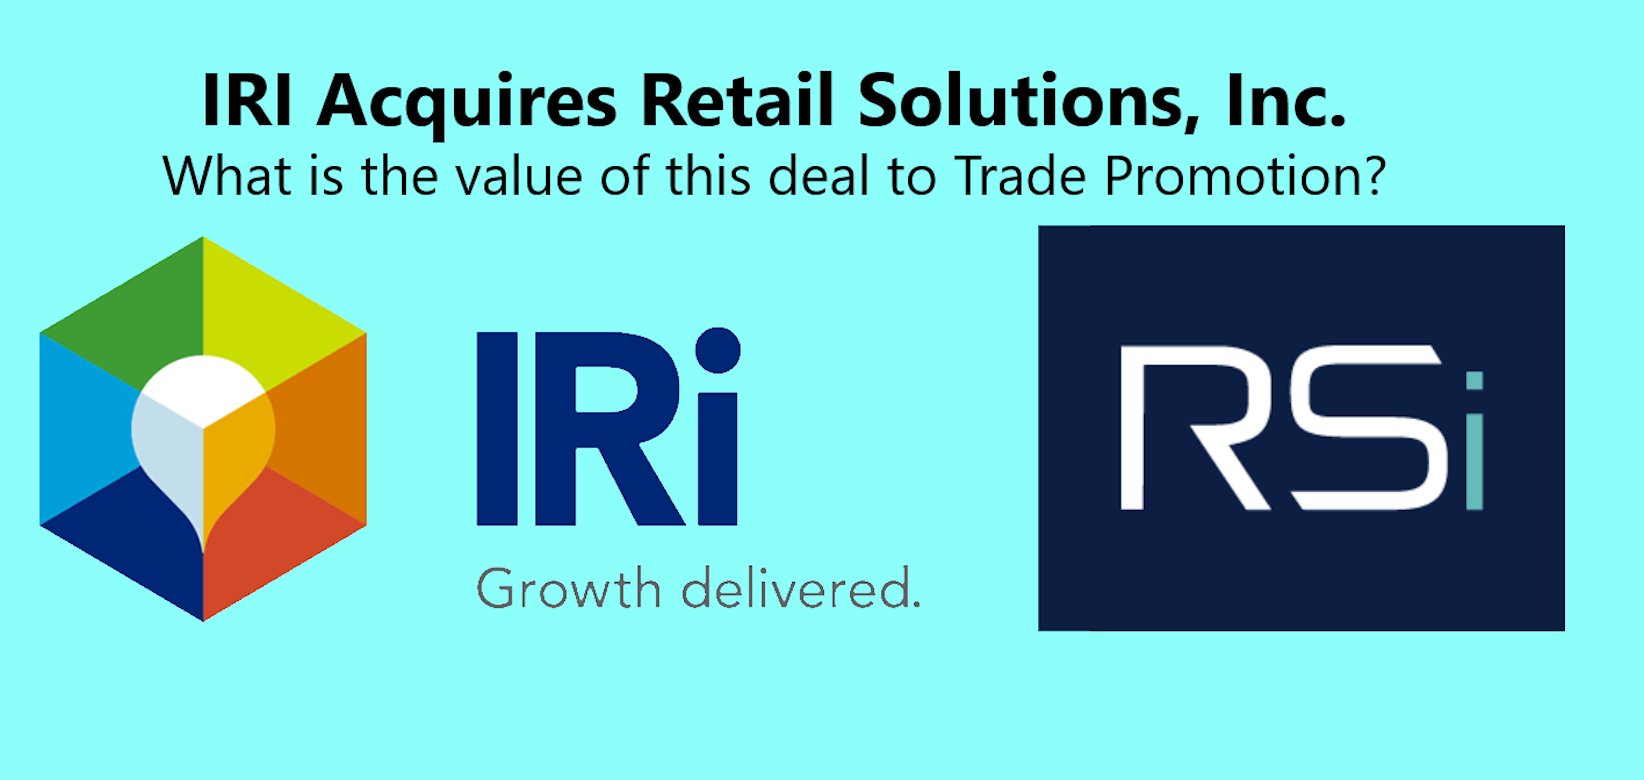 IRi Acquires RSi. A Landmark Deal for Trade Promotion.